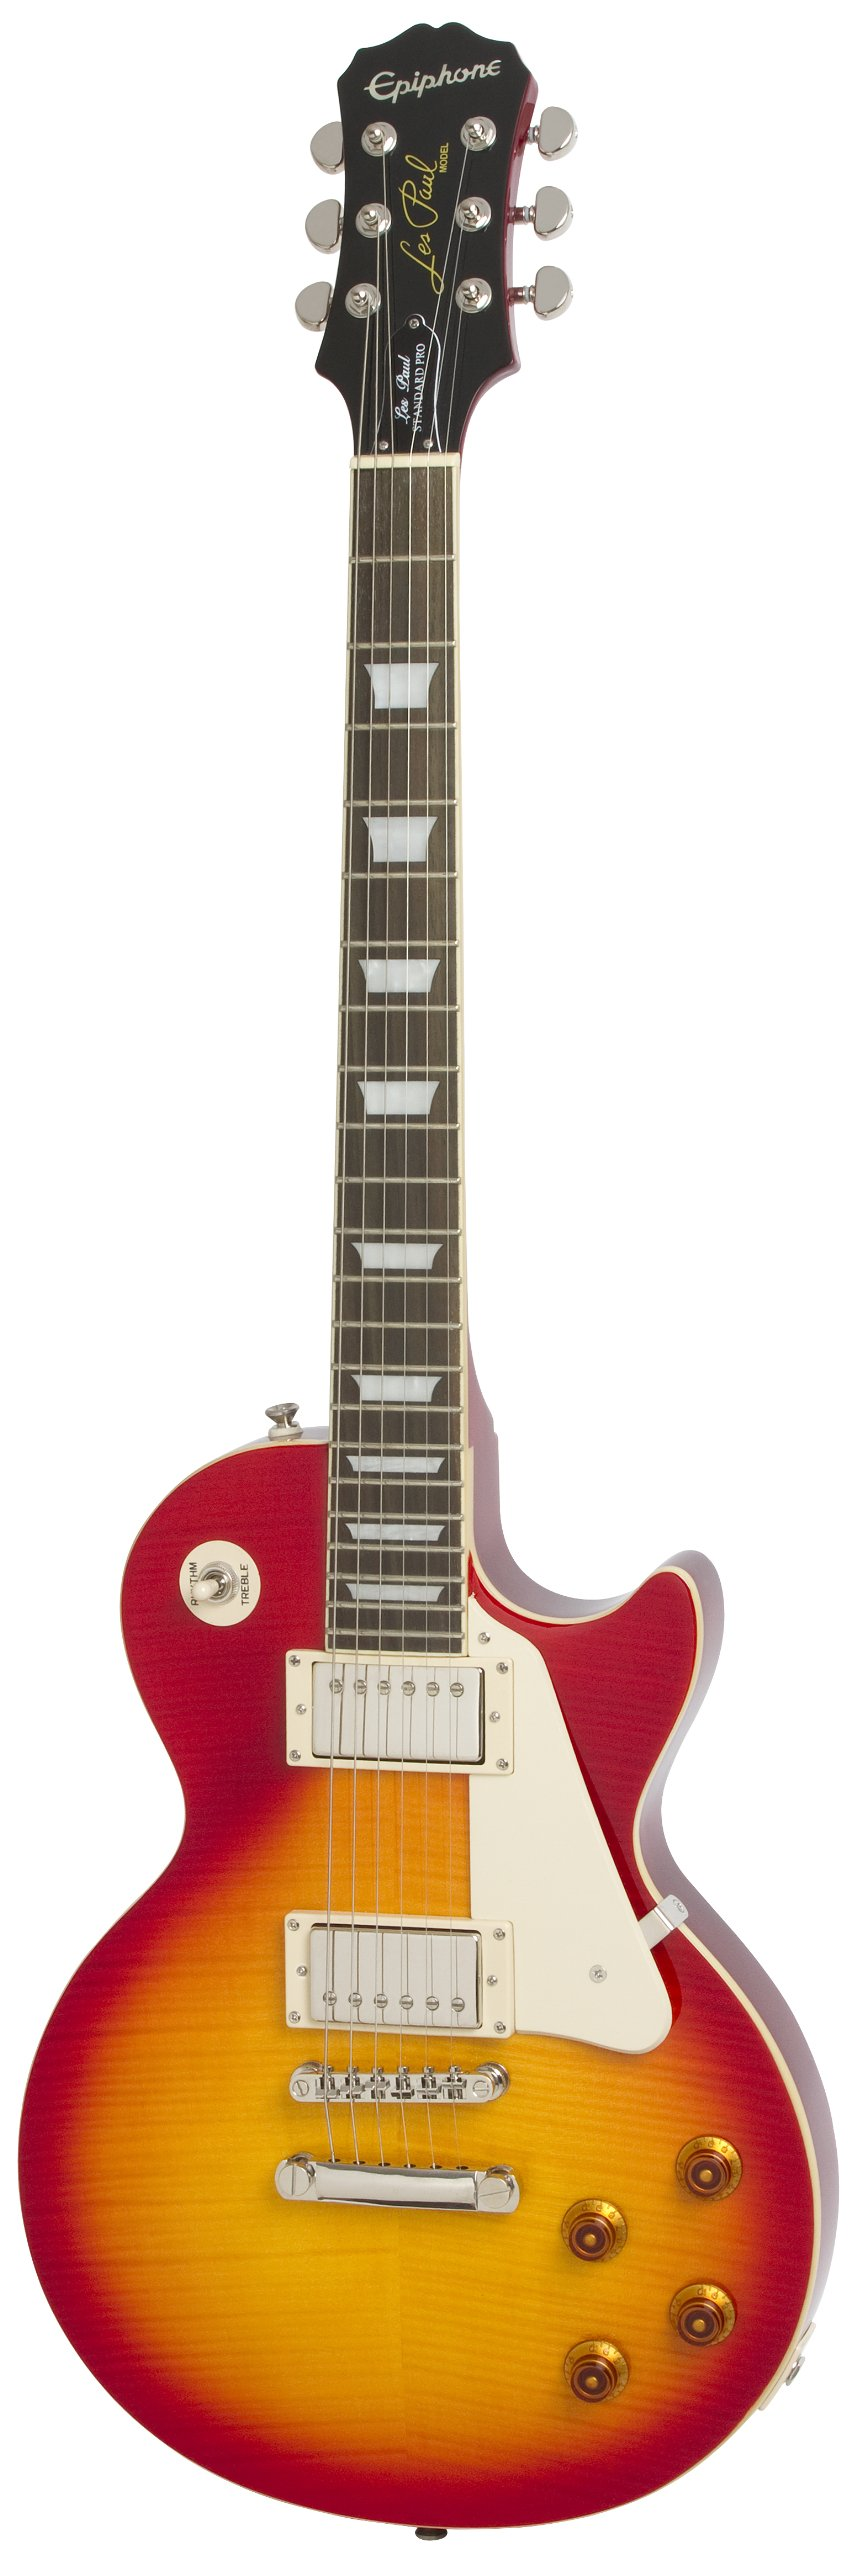 Epiphone Les Paul STANDARD PLUS-TOP PRO Electric Guitar with Coil-Tapping, Heritage Cherry Sunburst